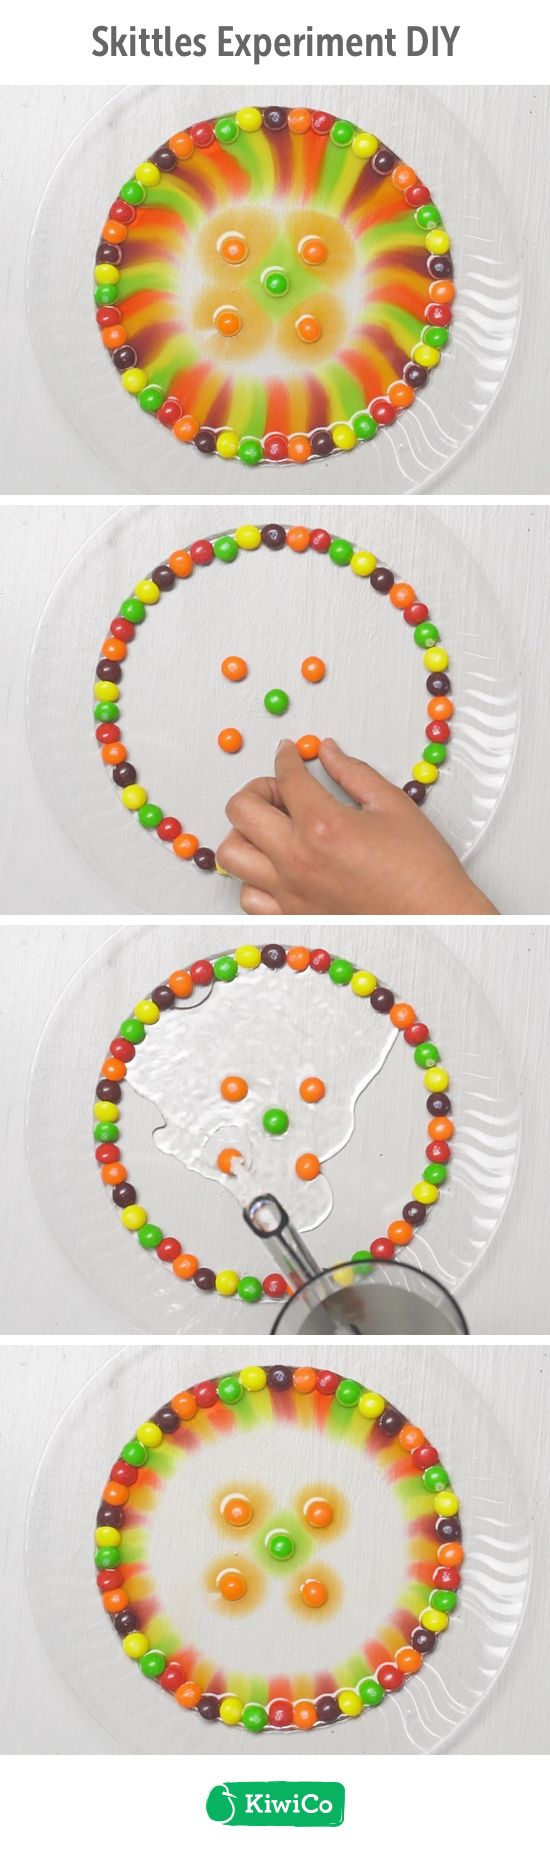 Do you ever have more candy than you know what to do with? Try this easy science experiment with your little ones! Learn about density with this fun science DIY. You'll learn about density in a sweet way! It's great for children of all ages and is an inexpensive and cheap way to keep the kids entertained. Happy science!